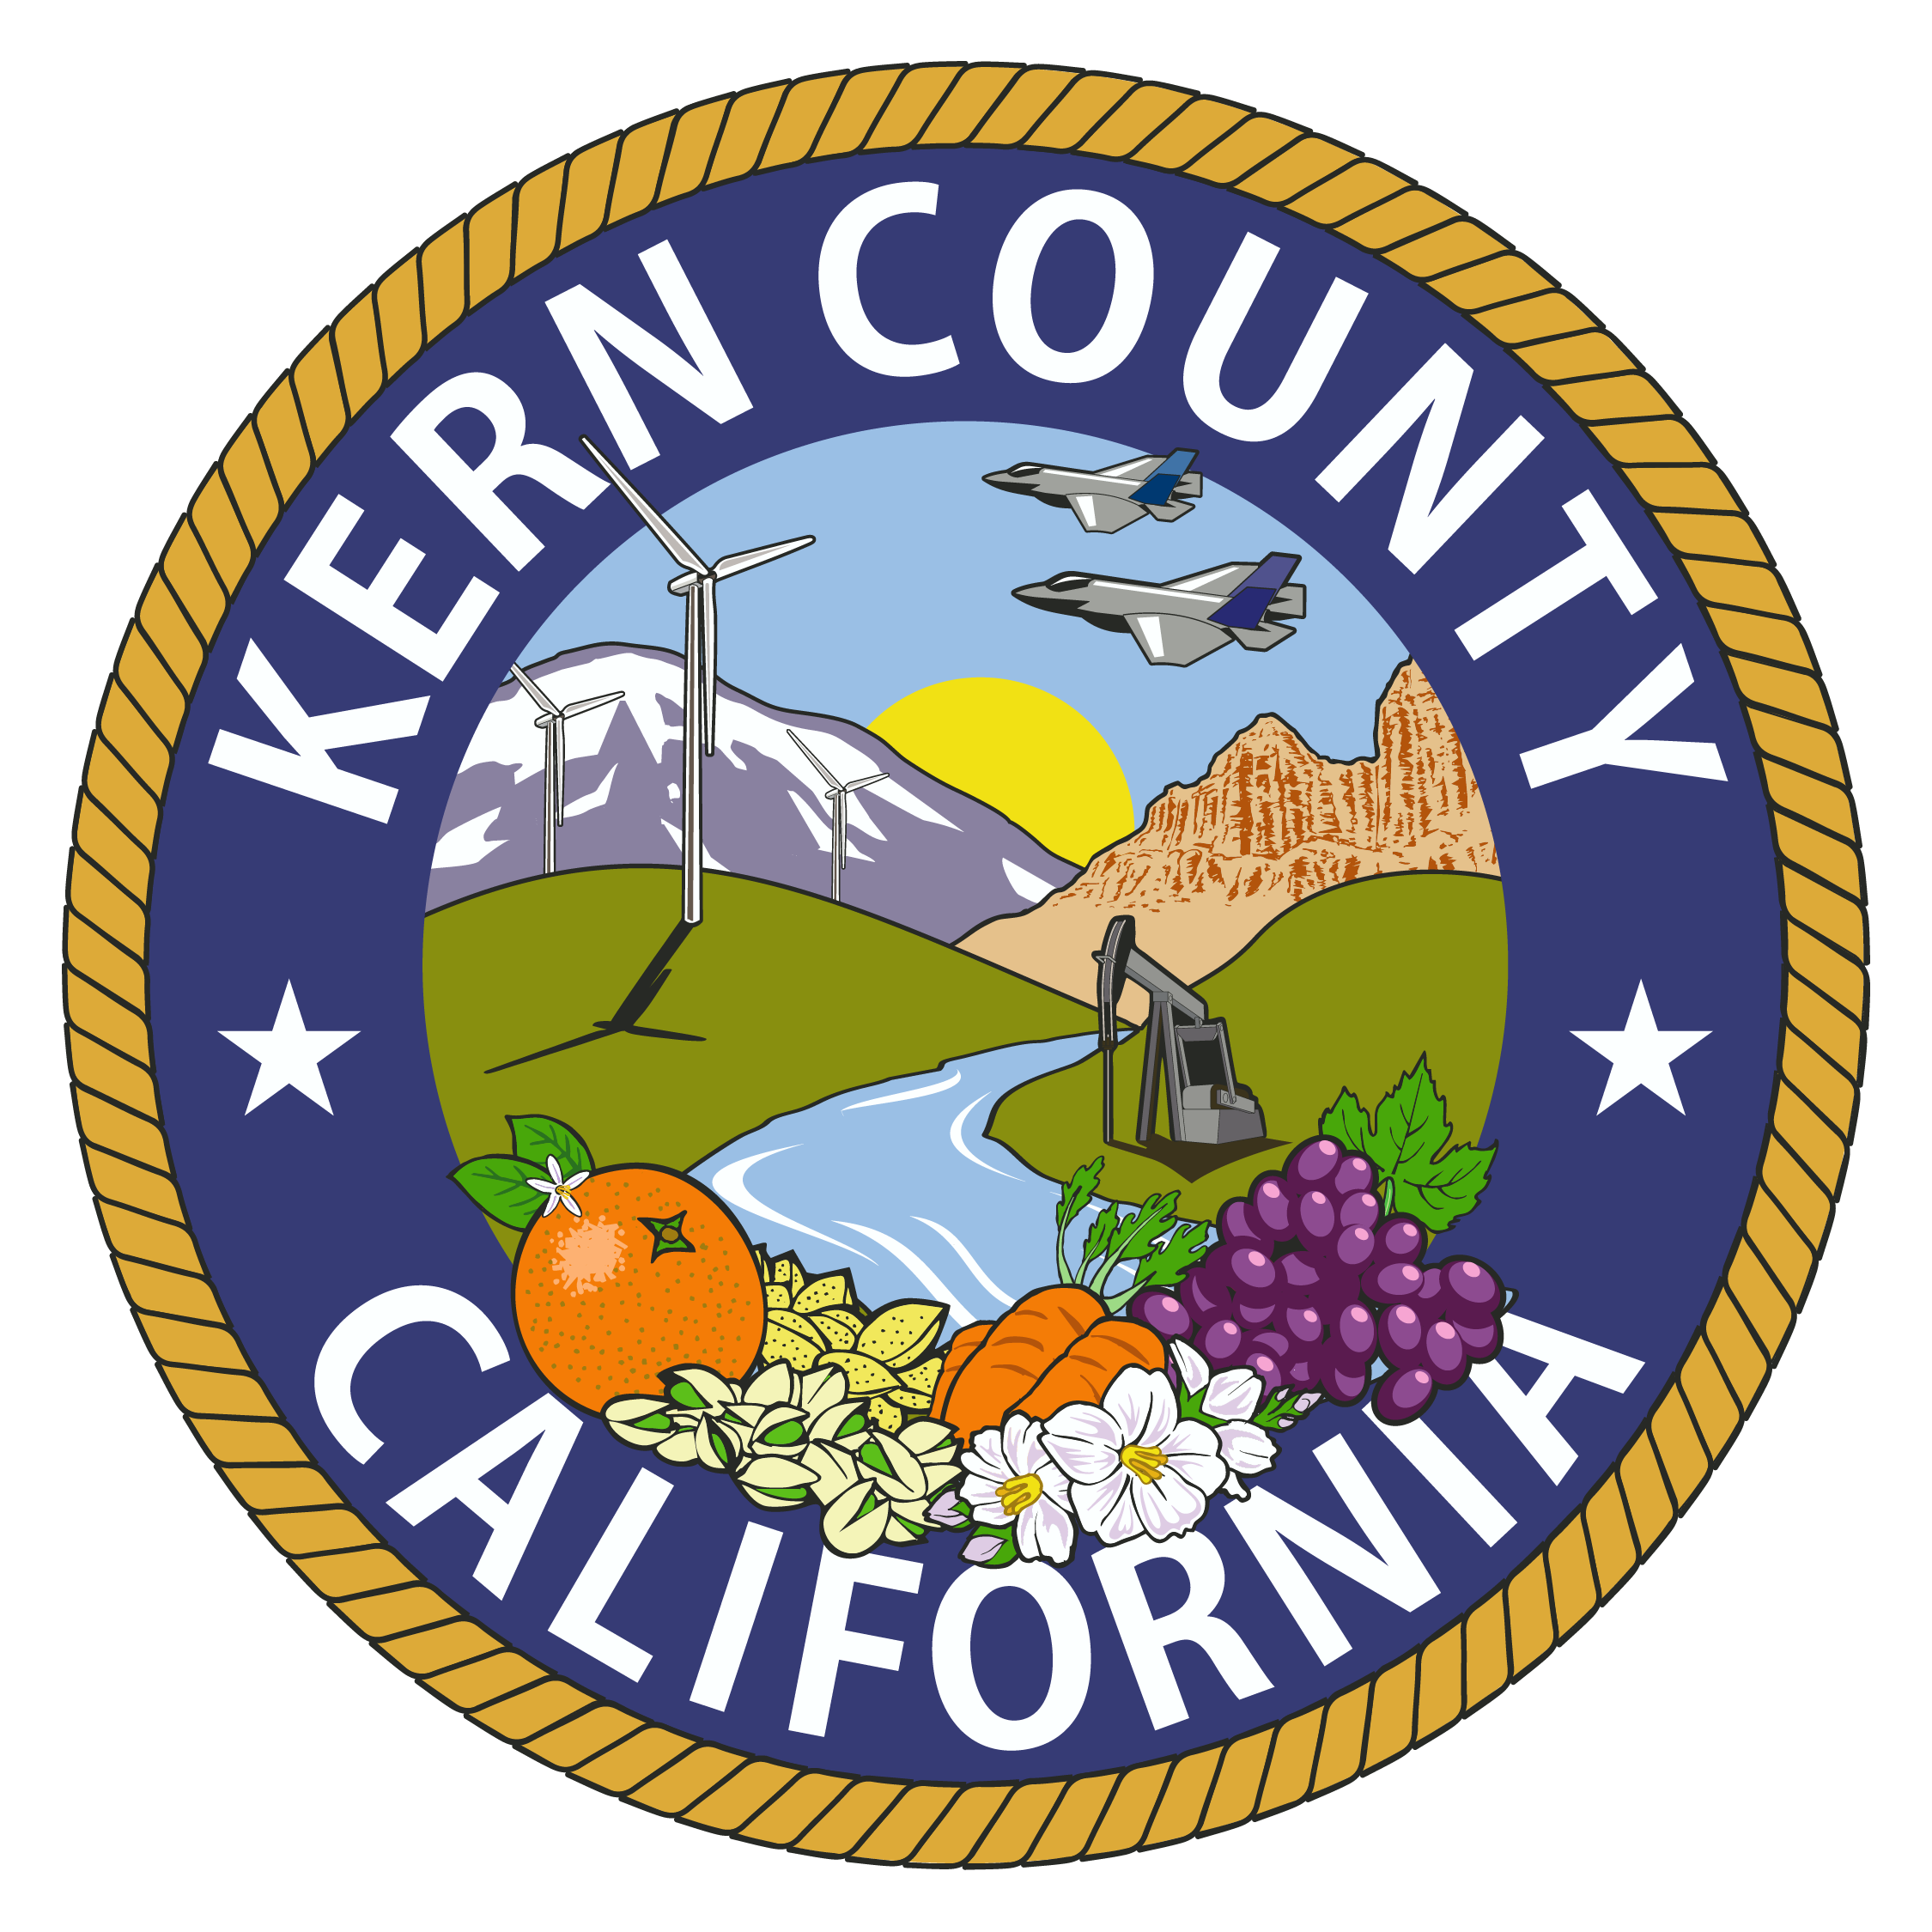 Mountains with crops and sun clipart clip royalty free stock File:Kern County Seal.png - Wikimedia Commons clip royalty free stock